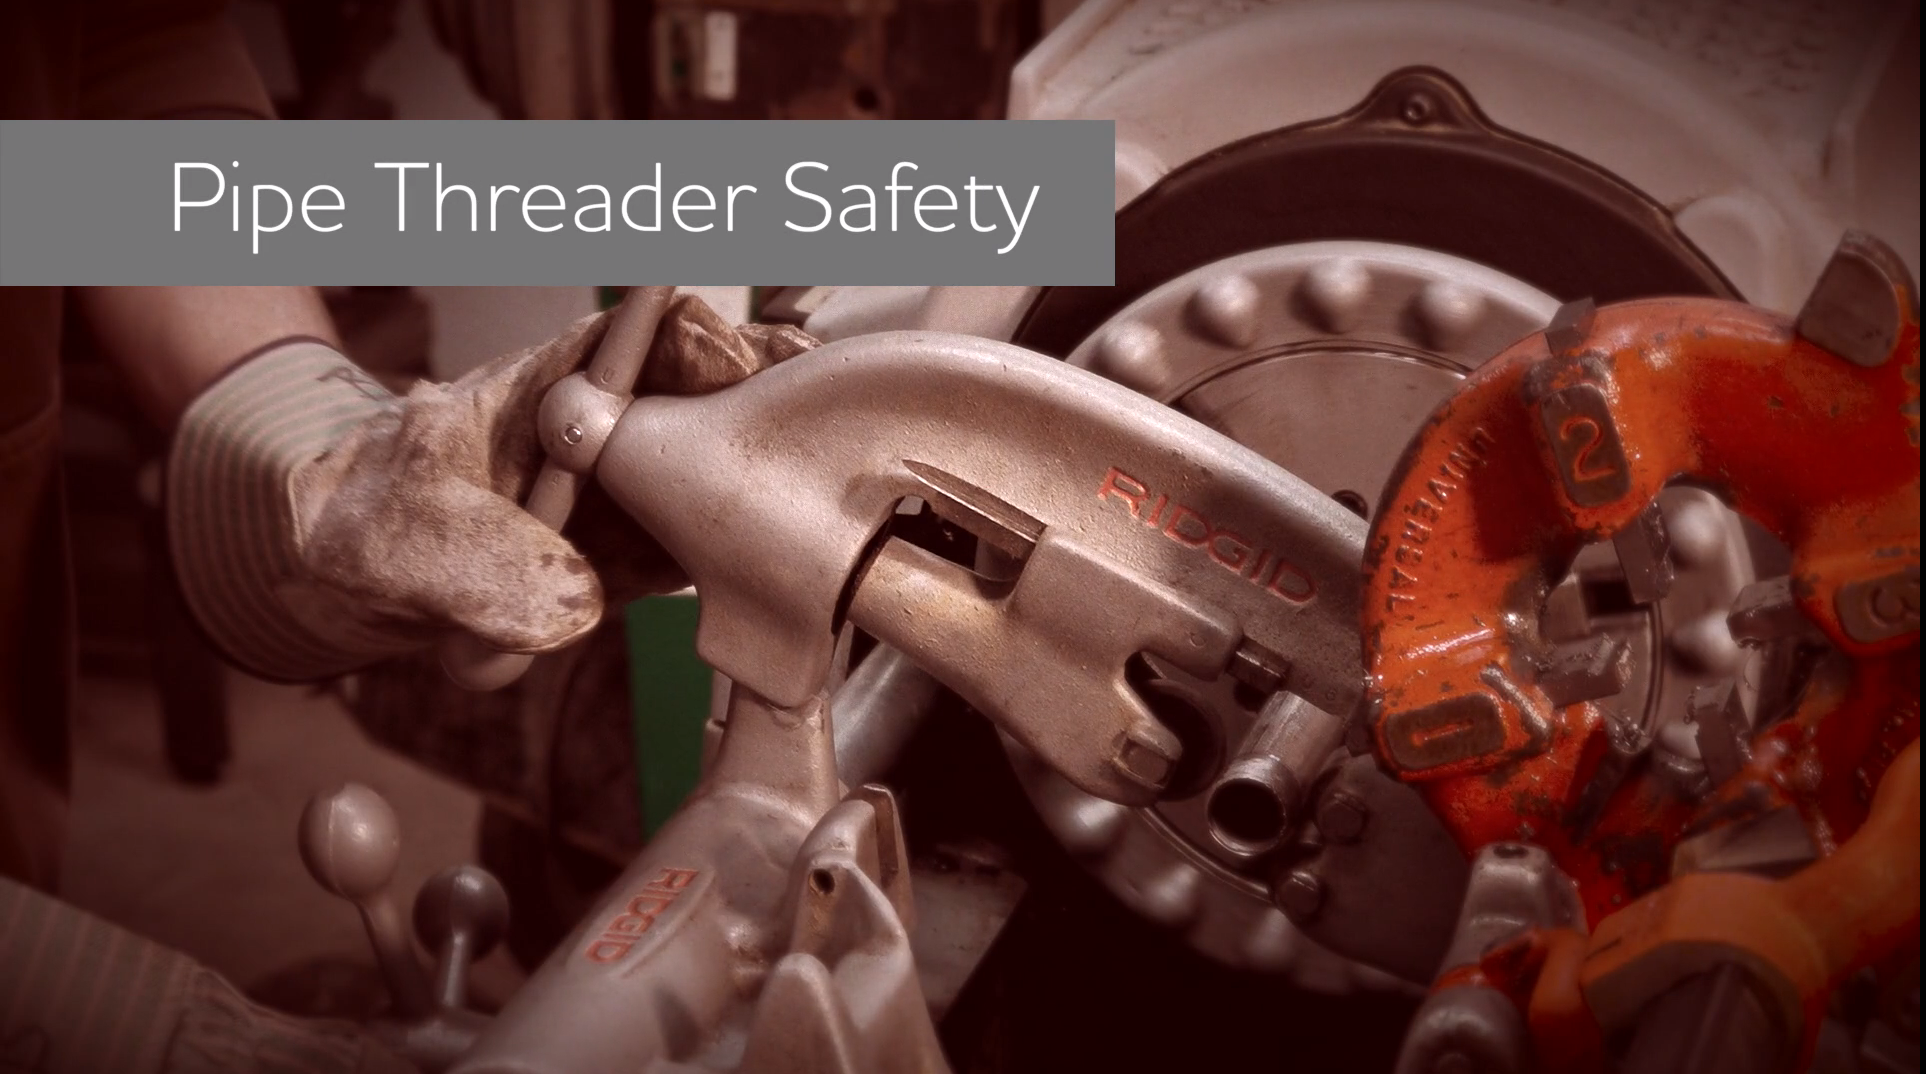 Pipe Threader Safety